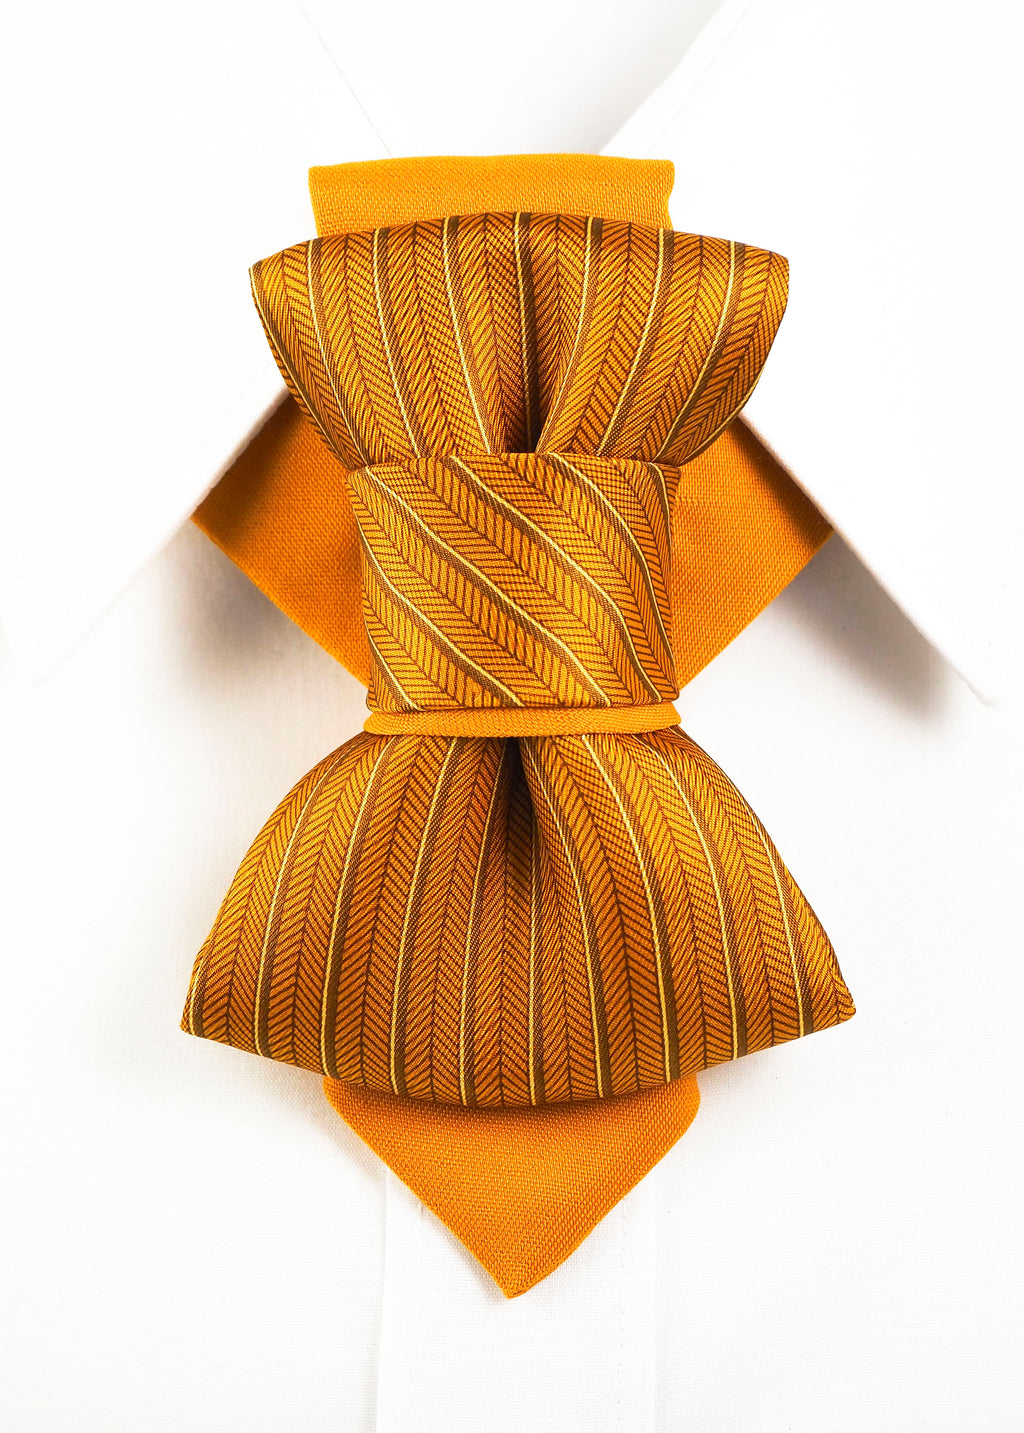 Bow Tie, Tie for wedding suite SUNFLOWER hopper tie Bow tie